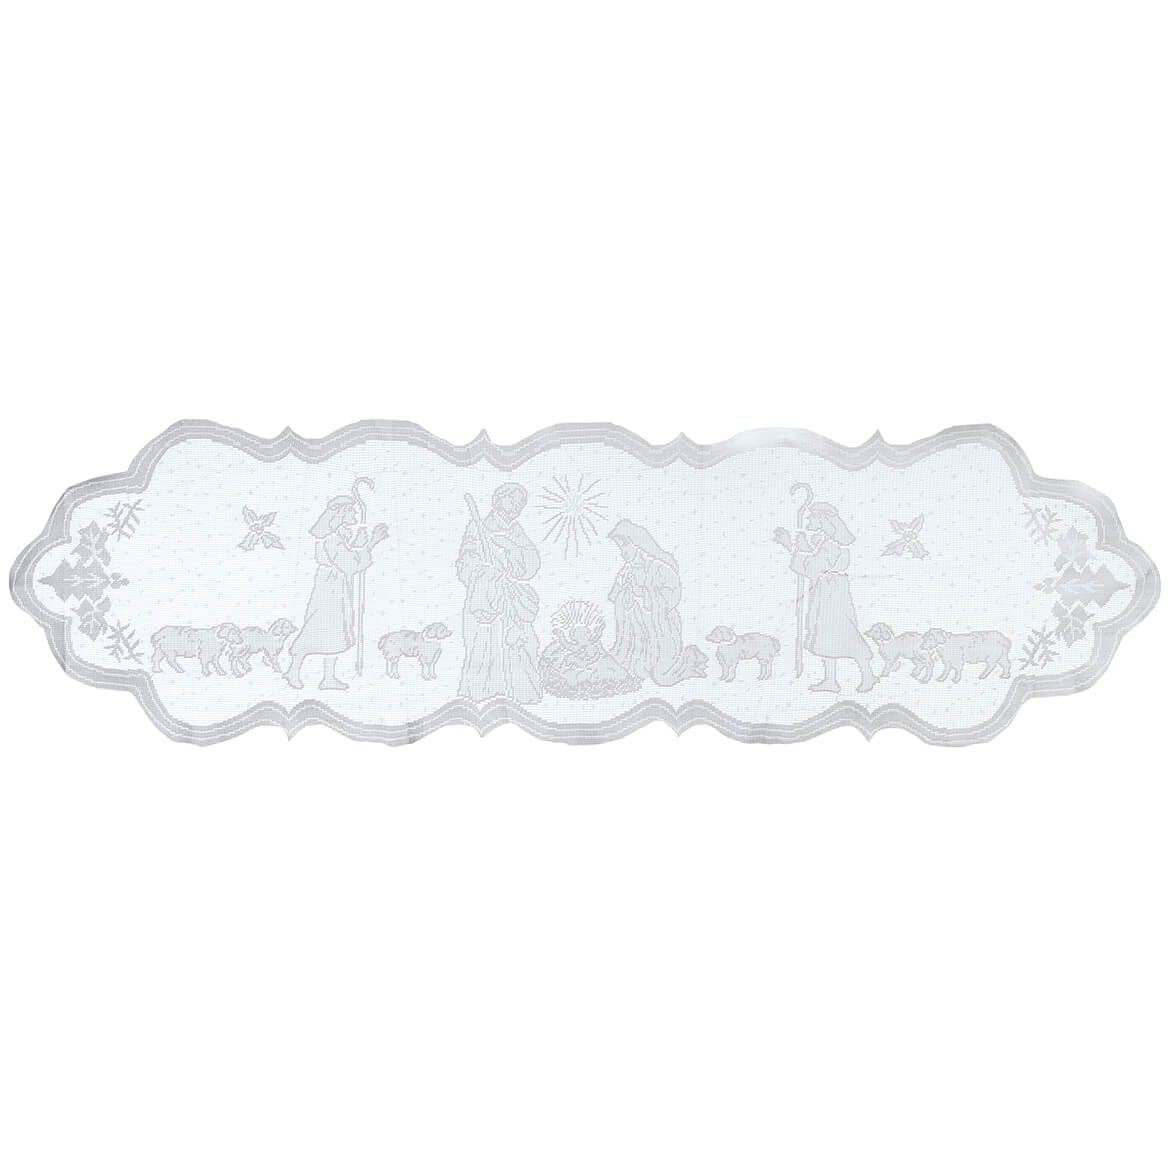 Silent Night Lace Table Runner-372363